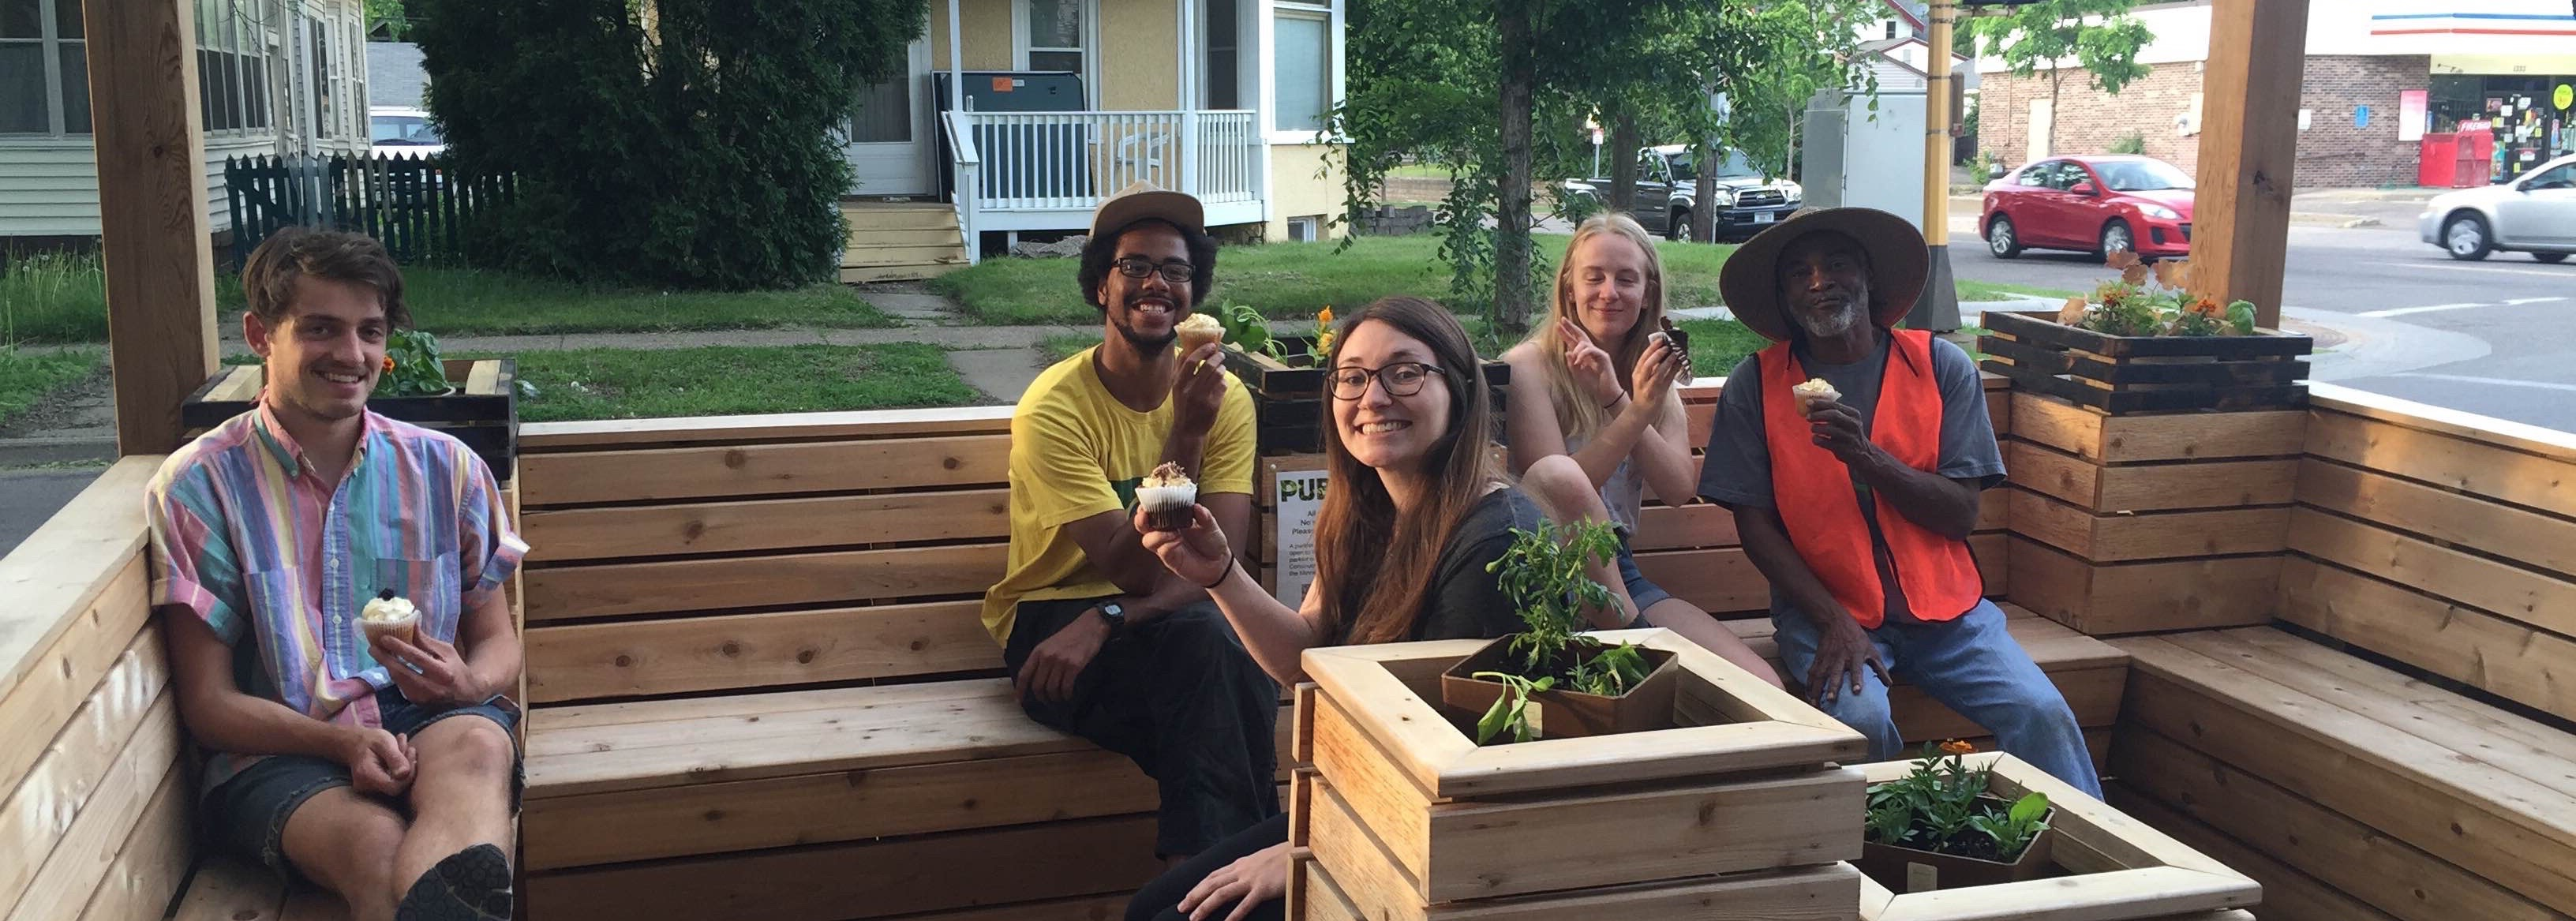 Parklets that Empower